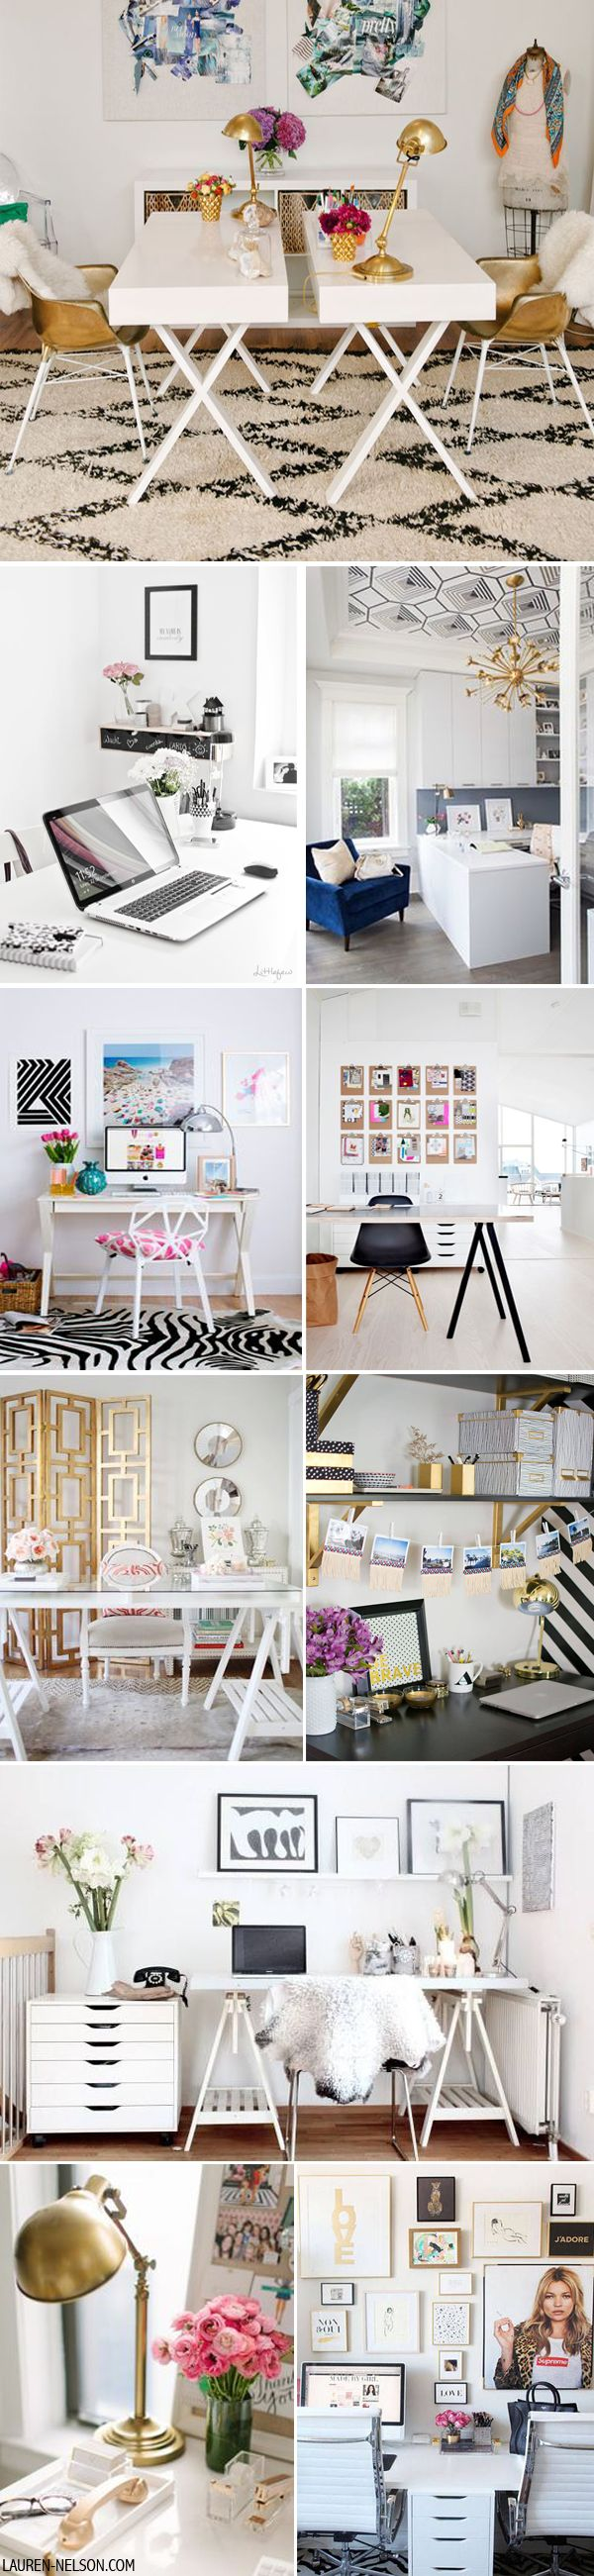 10 Simple and Stylish Home Office Designs